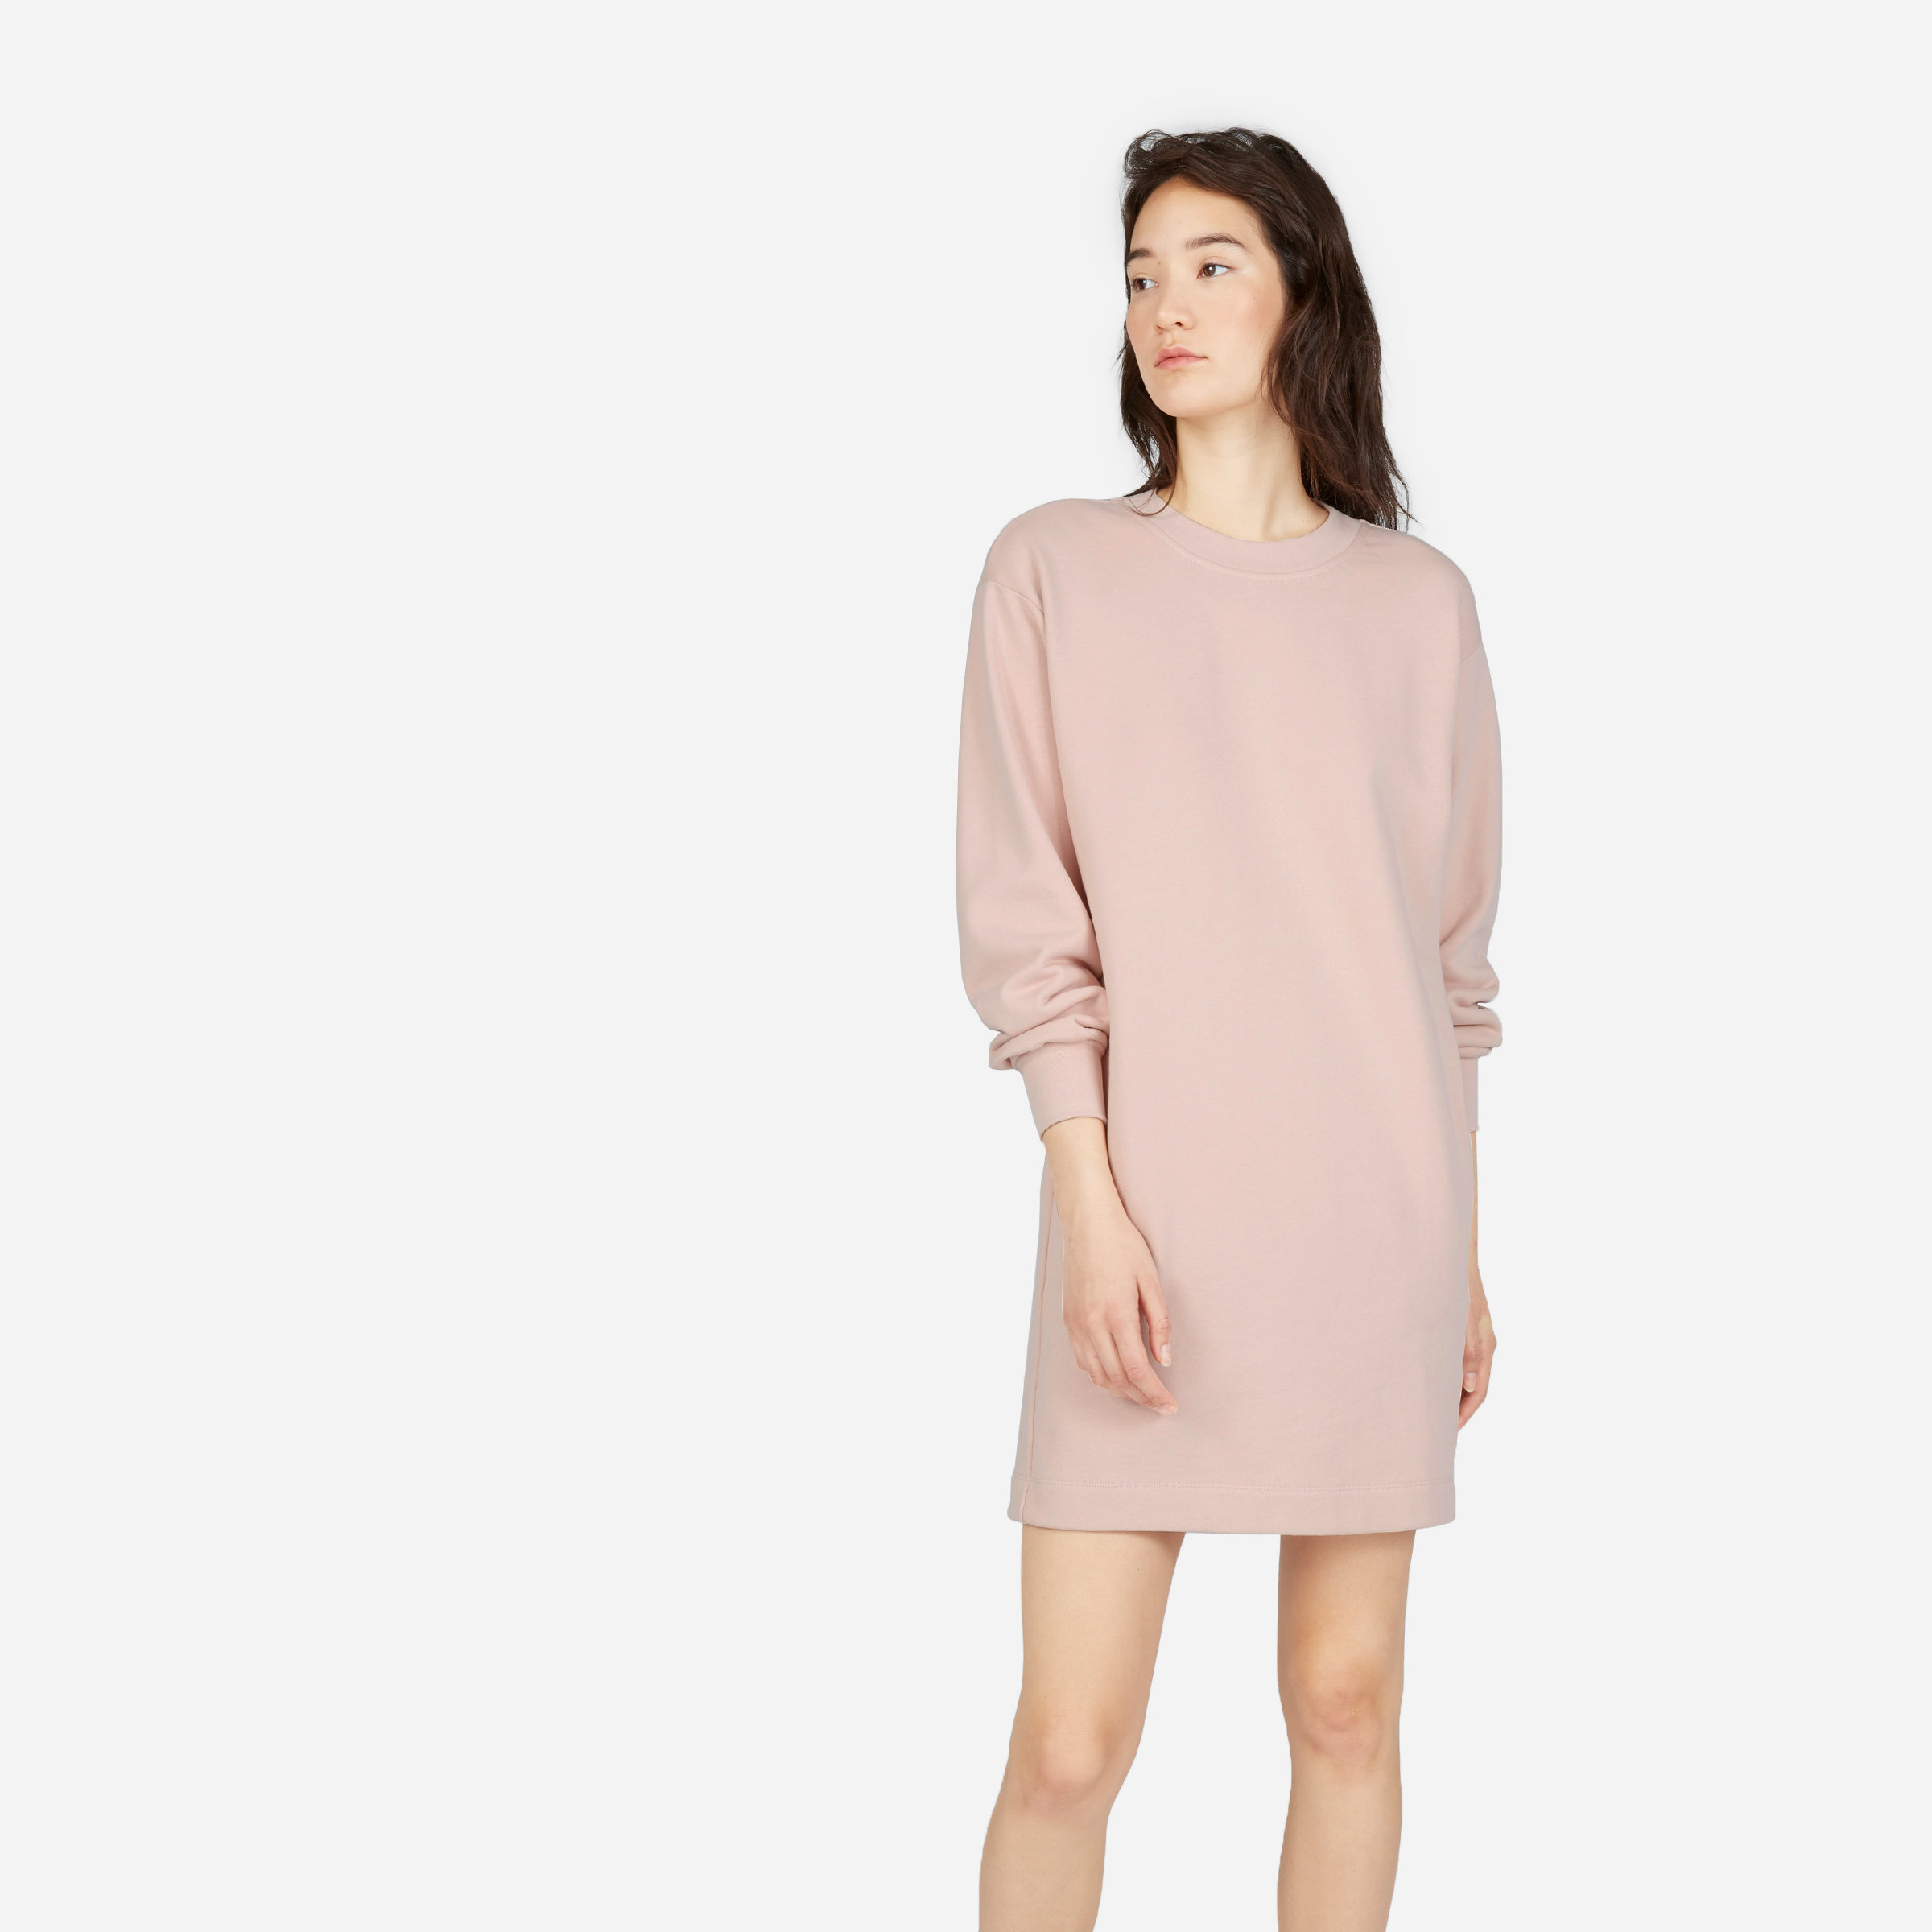 931f043416d The Classic French Terry Crew Neck Dress —  58